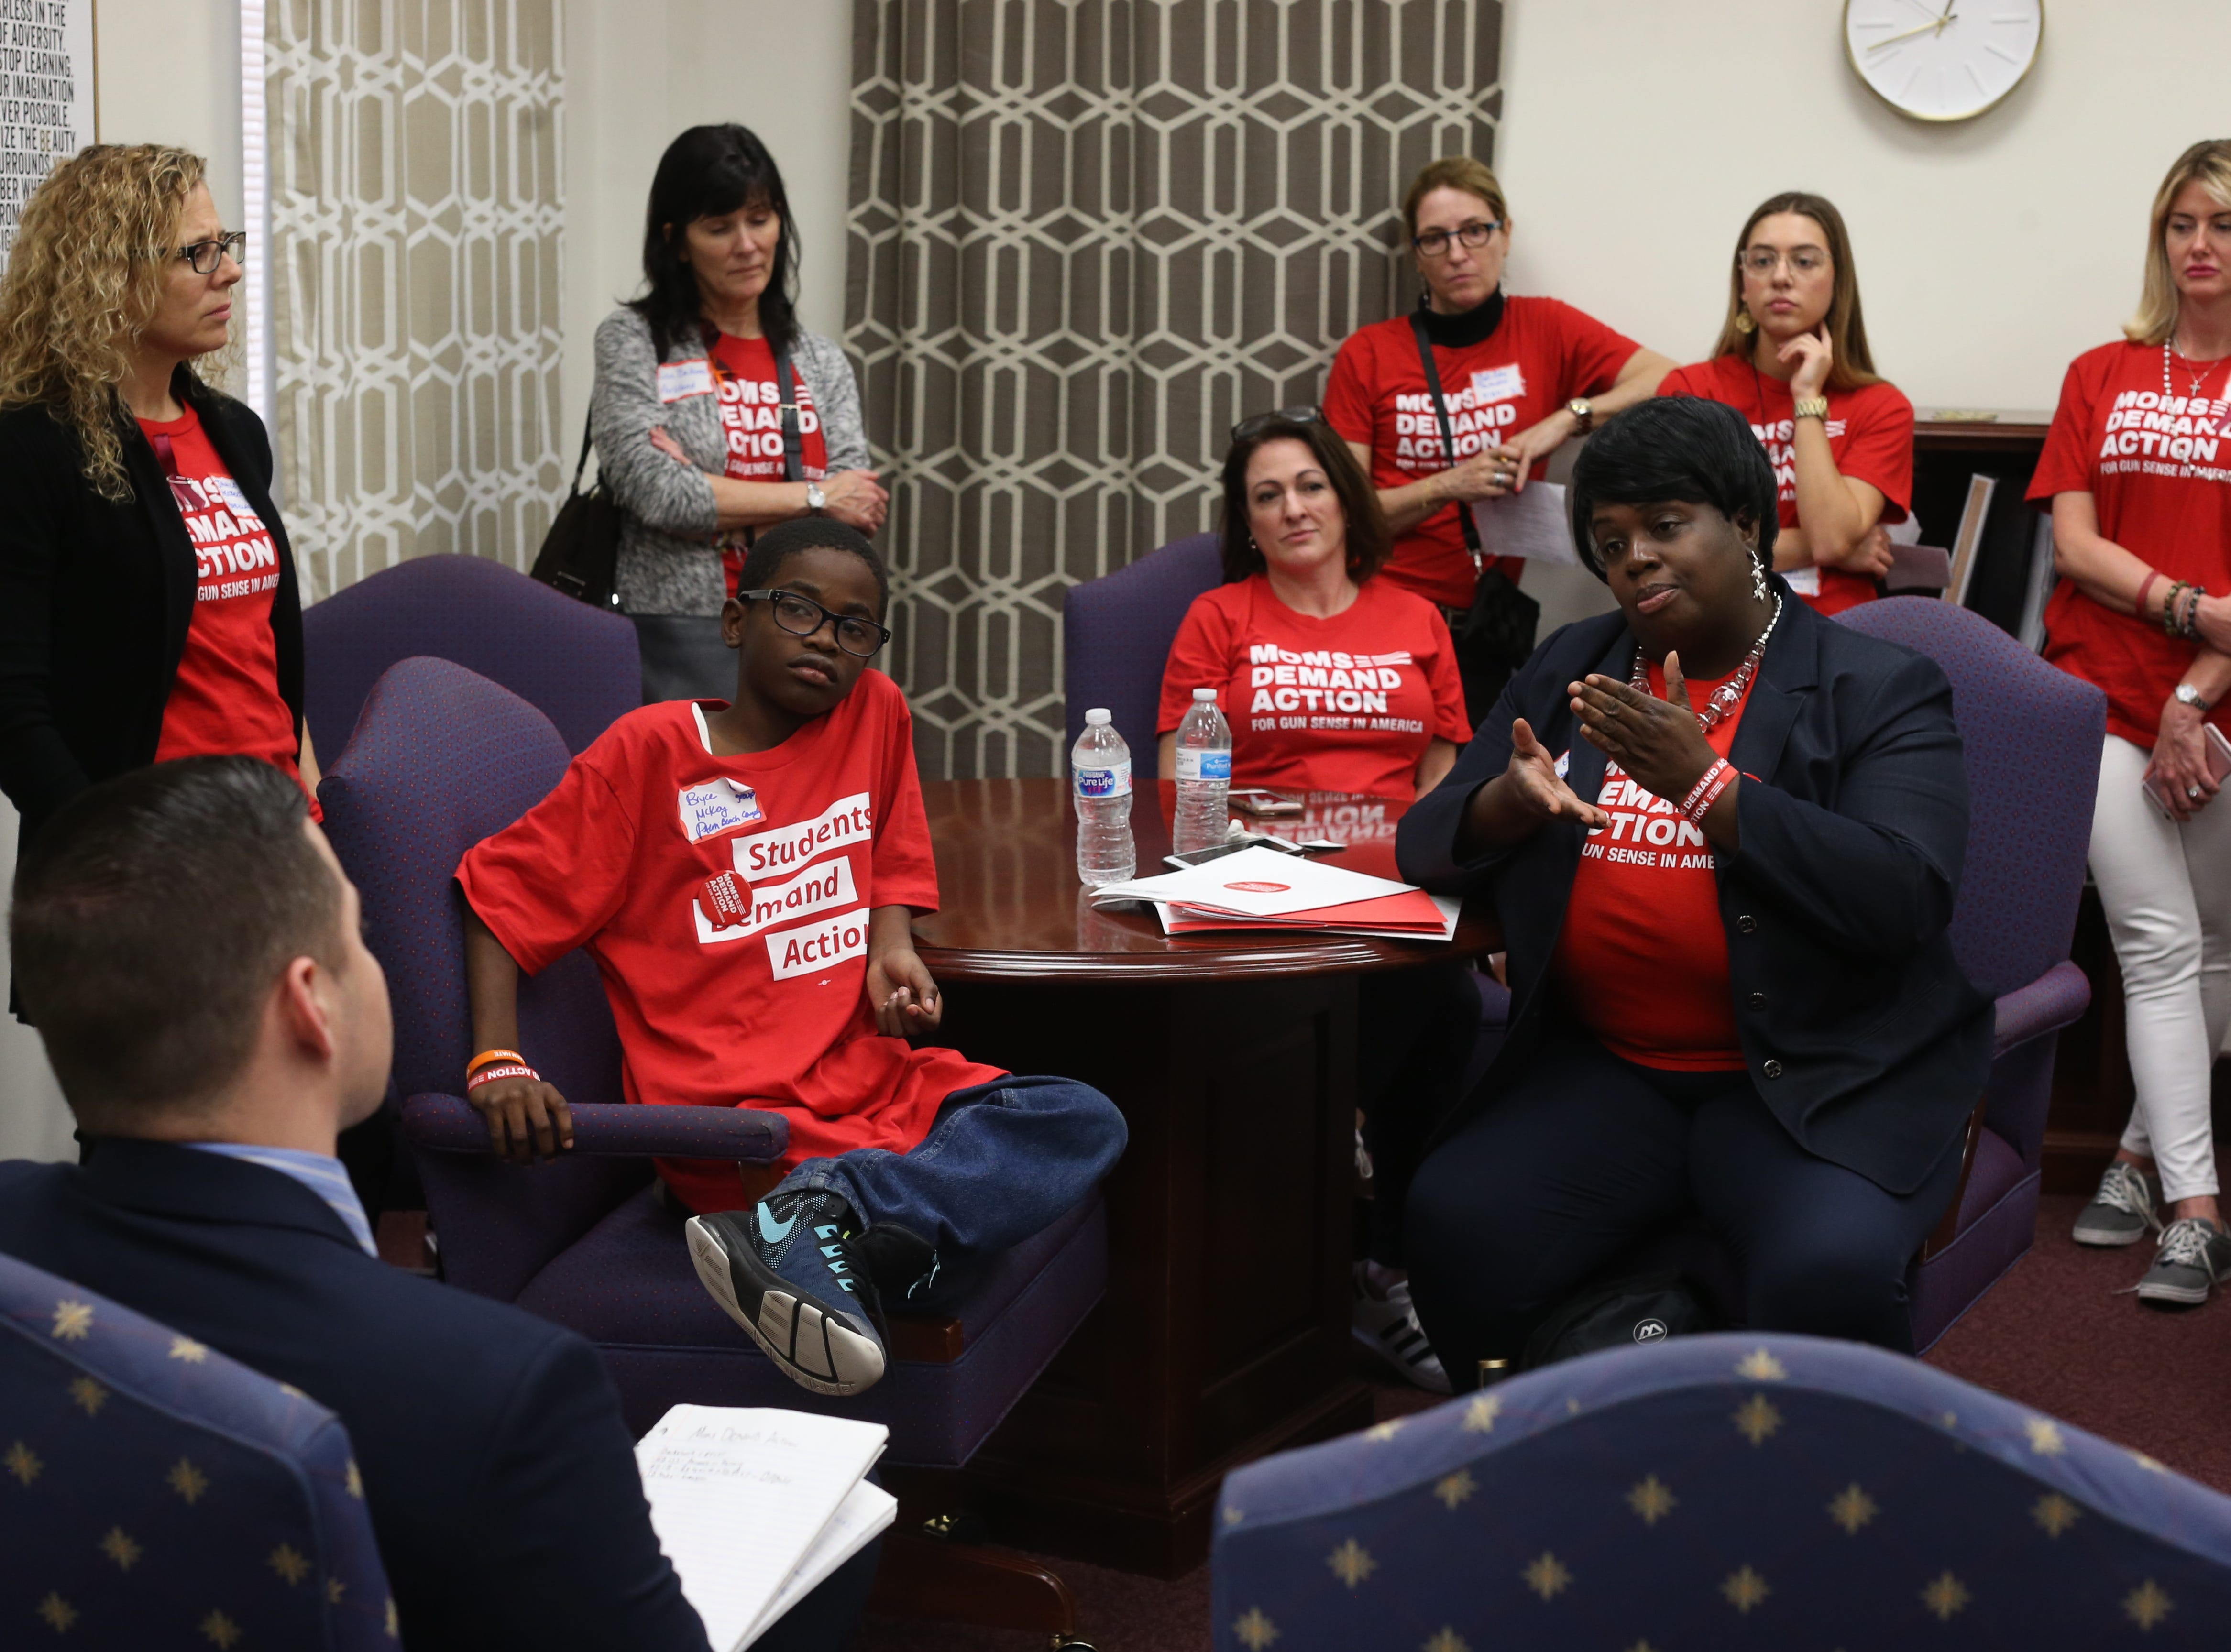 Teisha Mckoy, a member of Moms Demand Action from Palm Beach County, talks to Tomas Alcala, a legislative assistant to Sen. Bobby Powell in Powell's office Wednesday, Feb. 6, 2019. Mckoy and over 500 members of Moms Demand Action visited lawmakers at the Capitol to lobby for stricter gun laws.